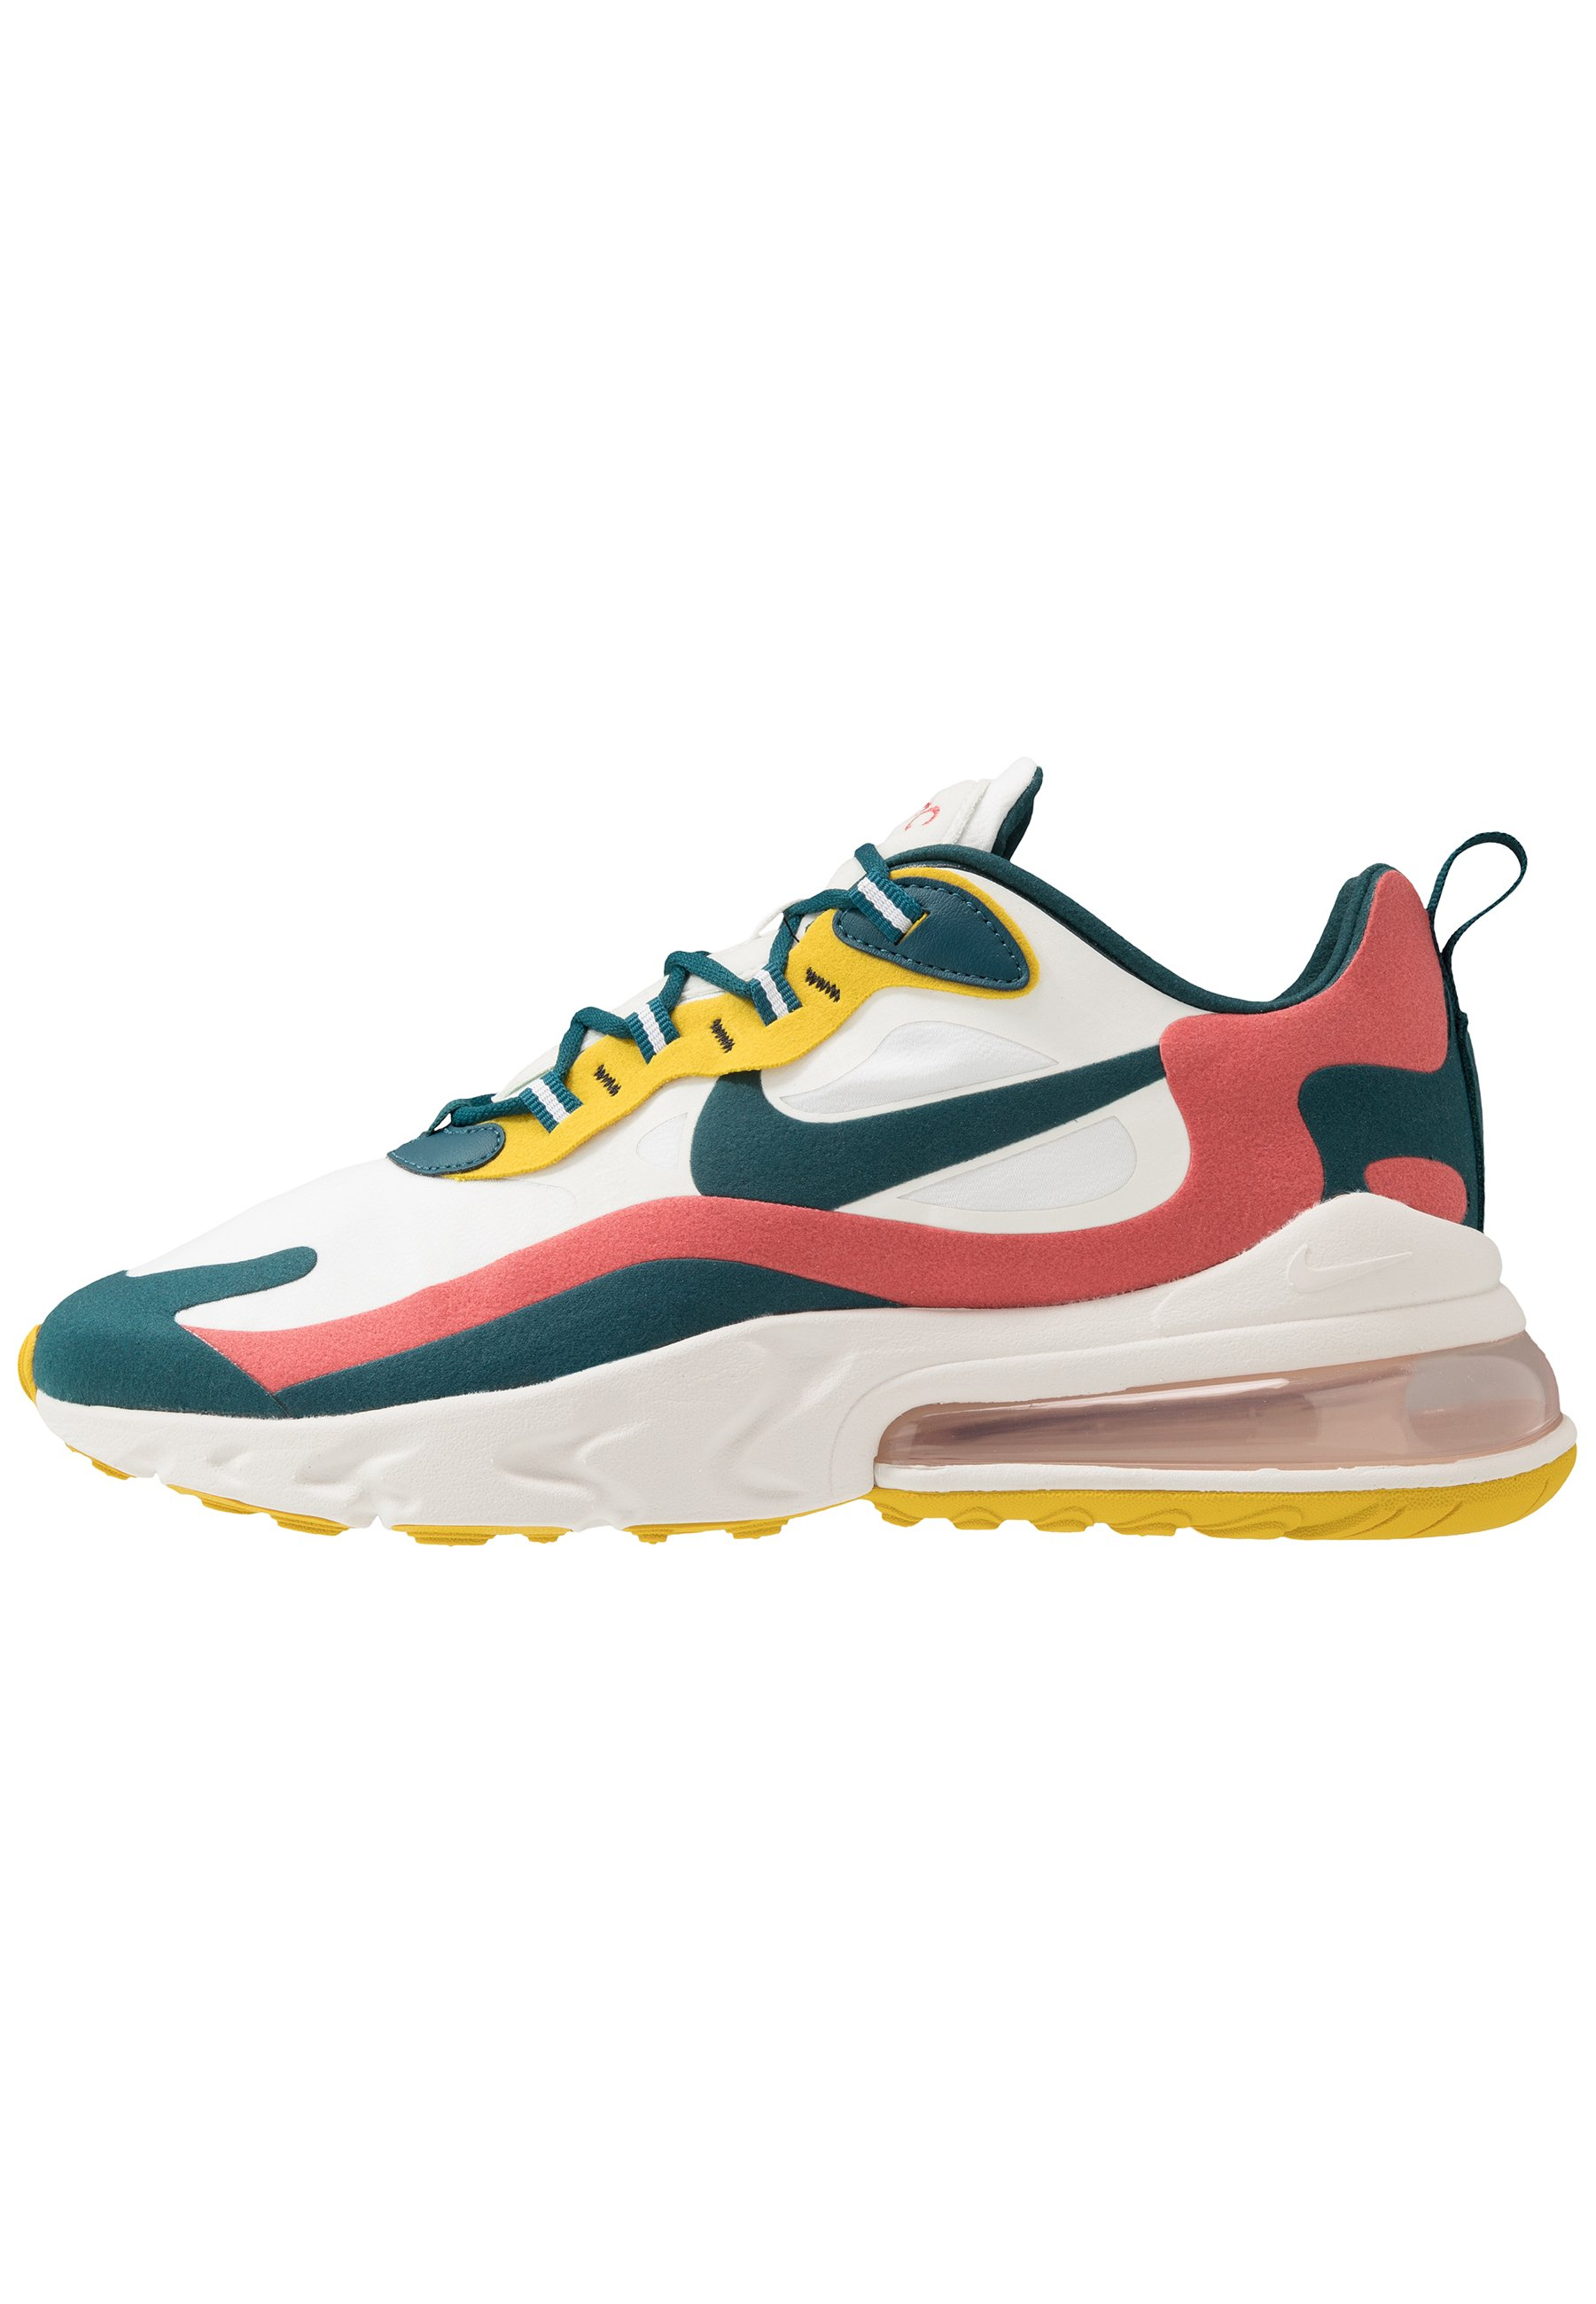 AIR MAX 270 REACT Baskets basses summit whitemidnight turqoisepueblo redsaffron quartzwhiteblack